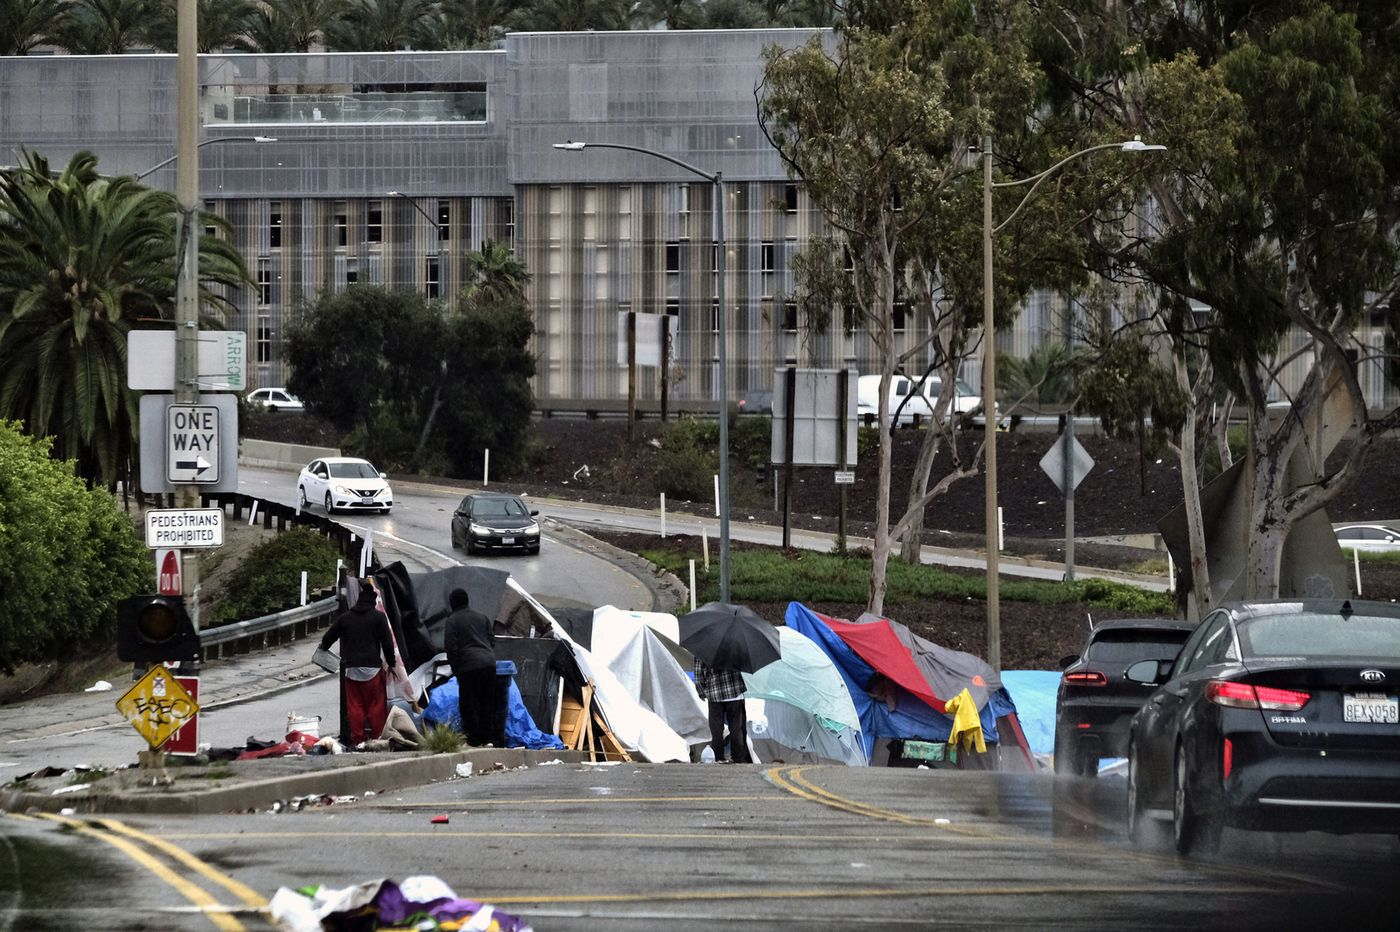 An addiction crisis disguised as a housing crisis on the West Coast | Opinion